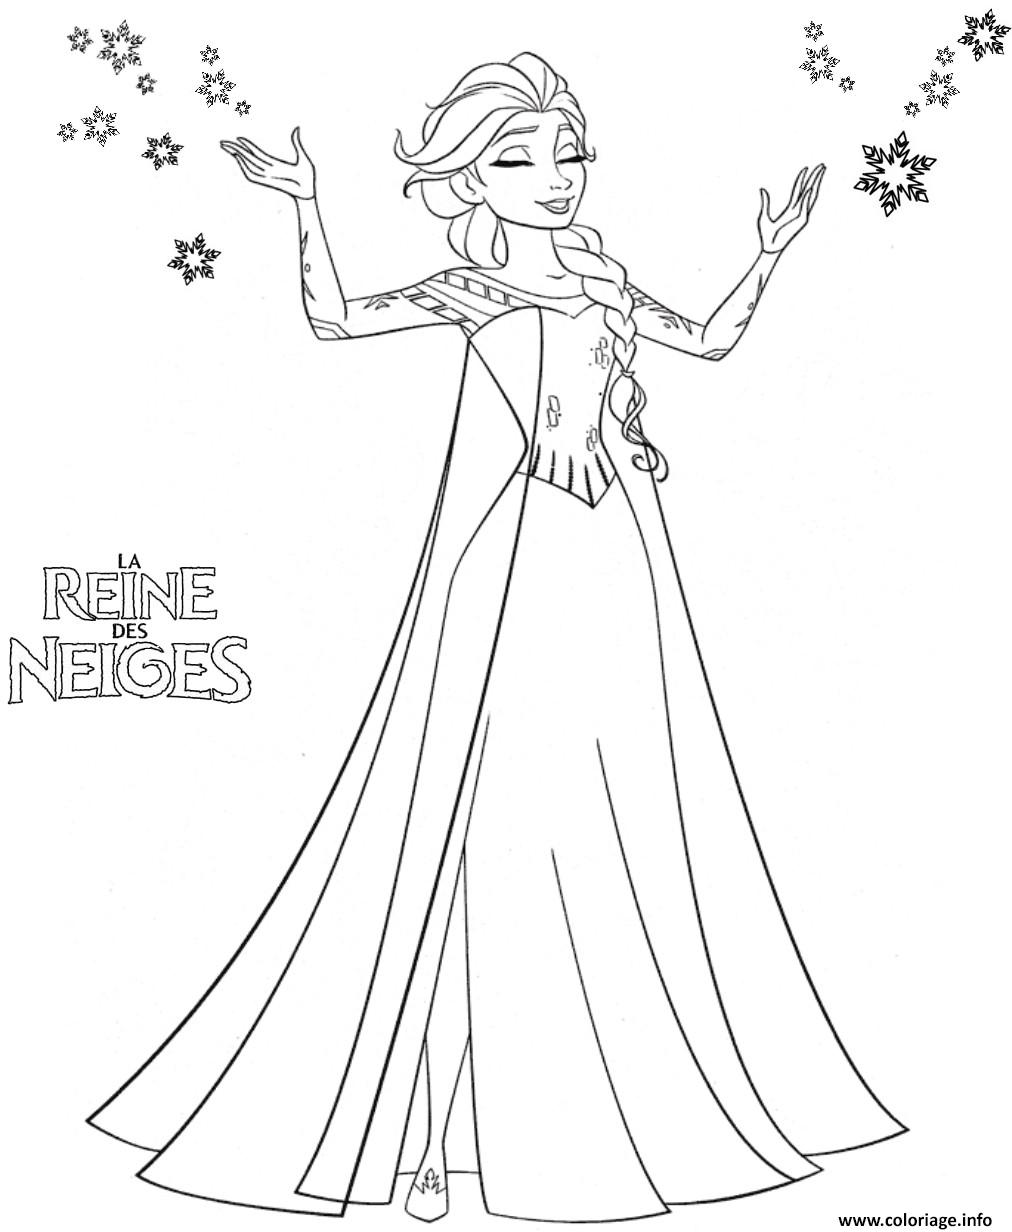 Coloriage princesse elsa dessin - Coloriages princesses gratuits ...